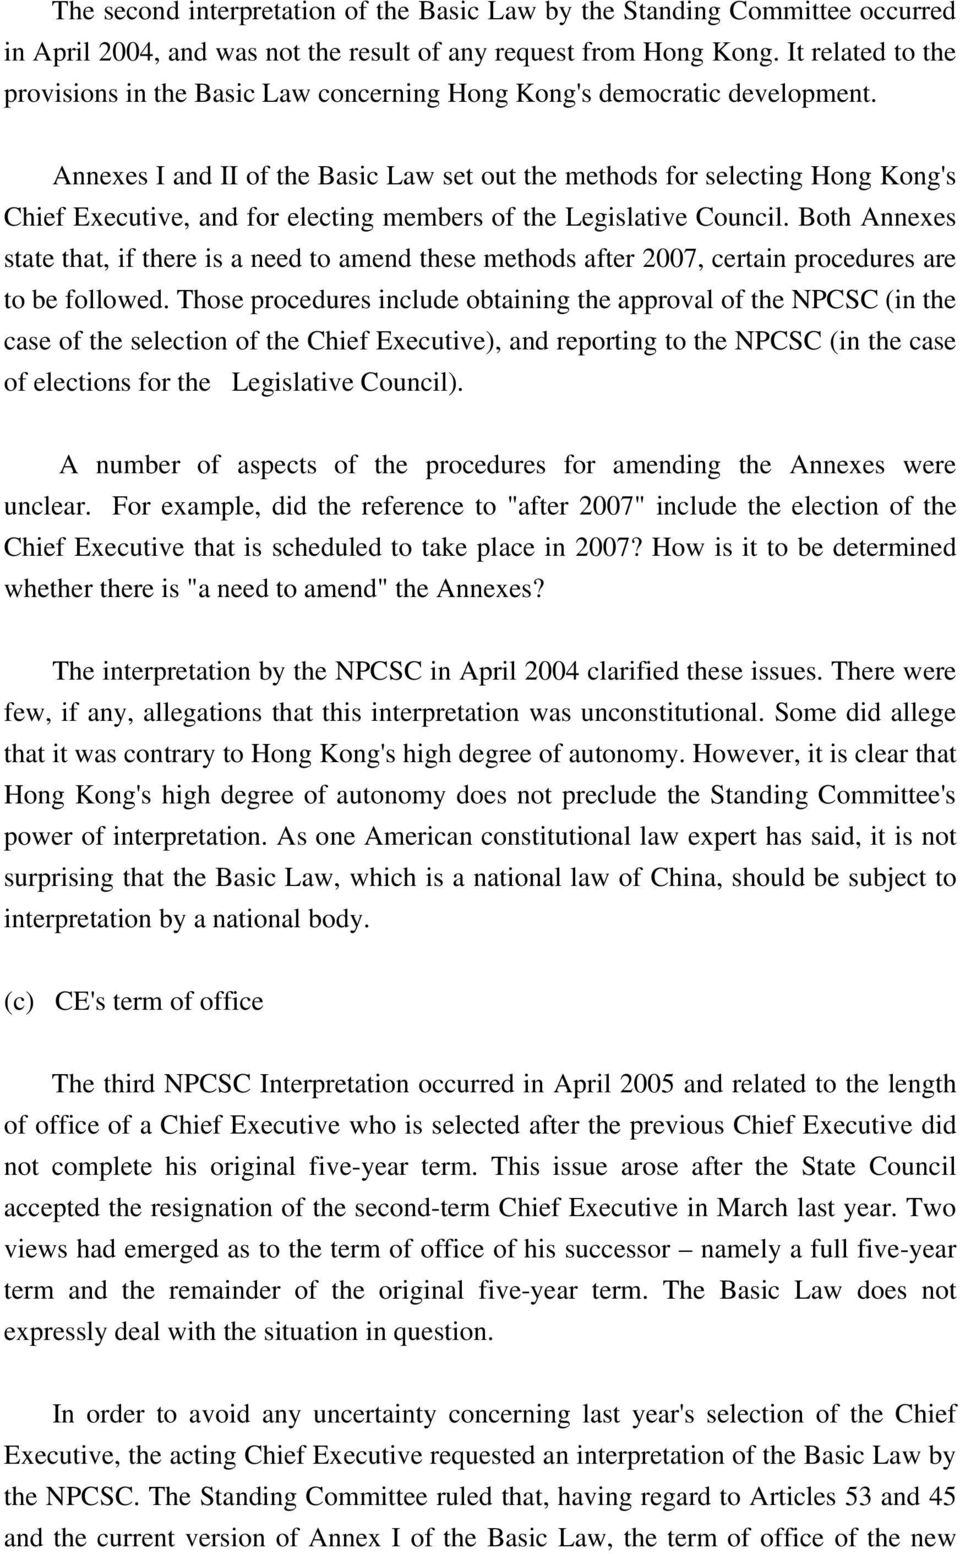 Annexes I and II of the Basic Law set out the methods for selecting Hong Kong's Chief Executive, and for electing members of the Legislative Council.